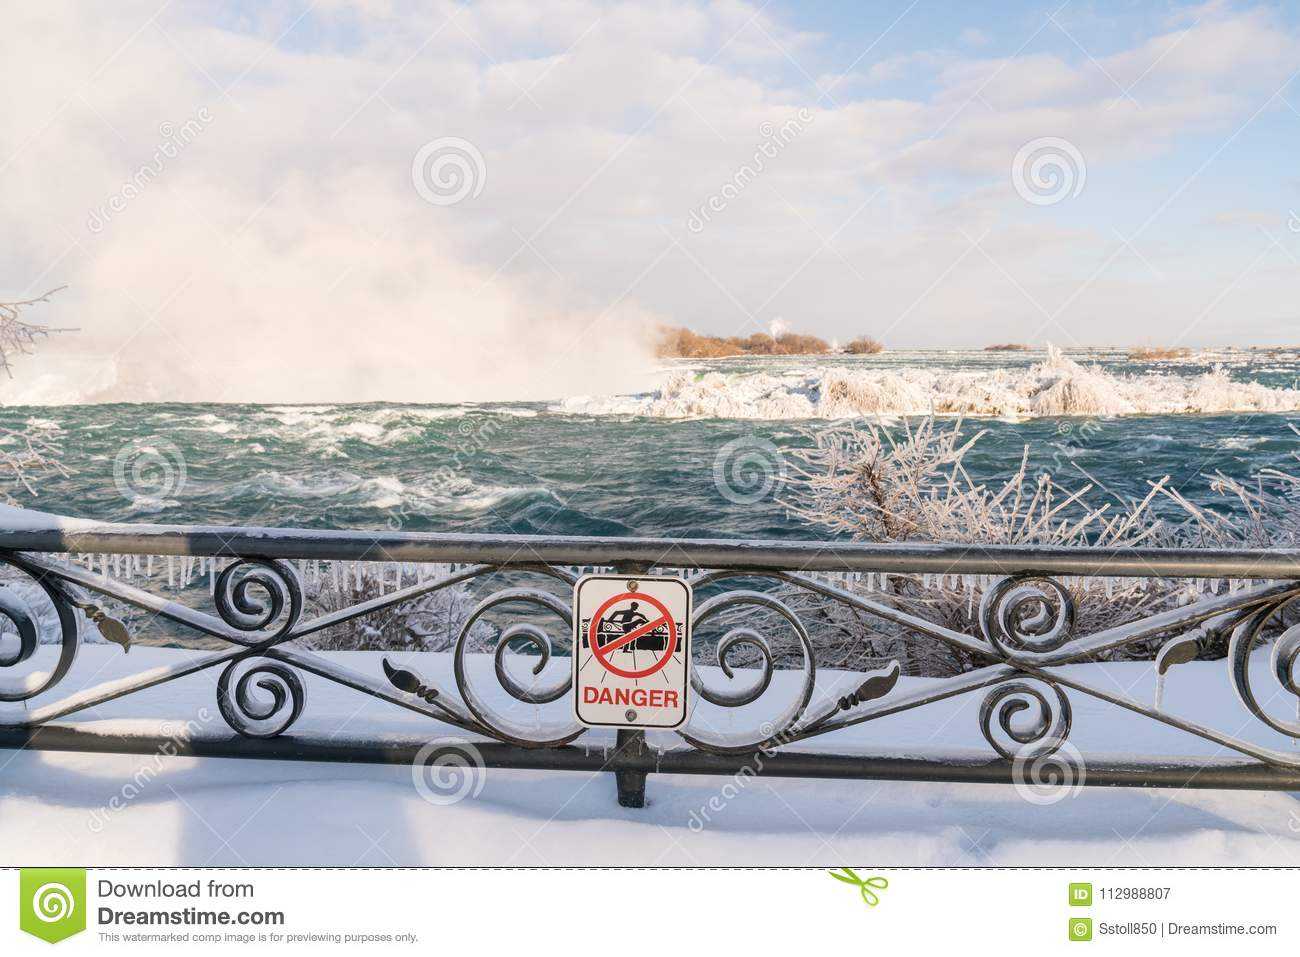 Niagara Falls in Winter with snow and ice